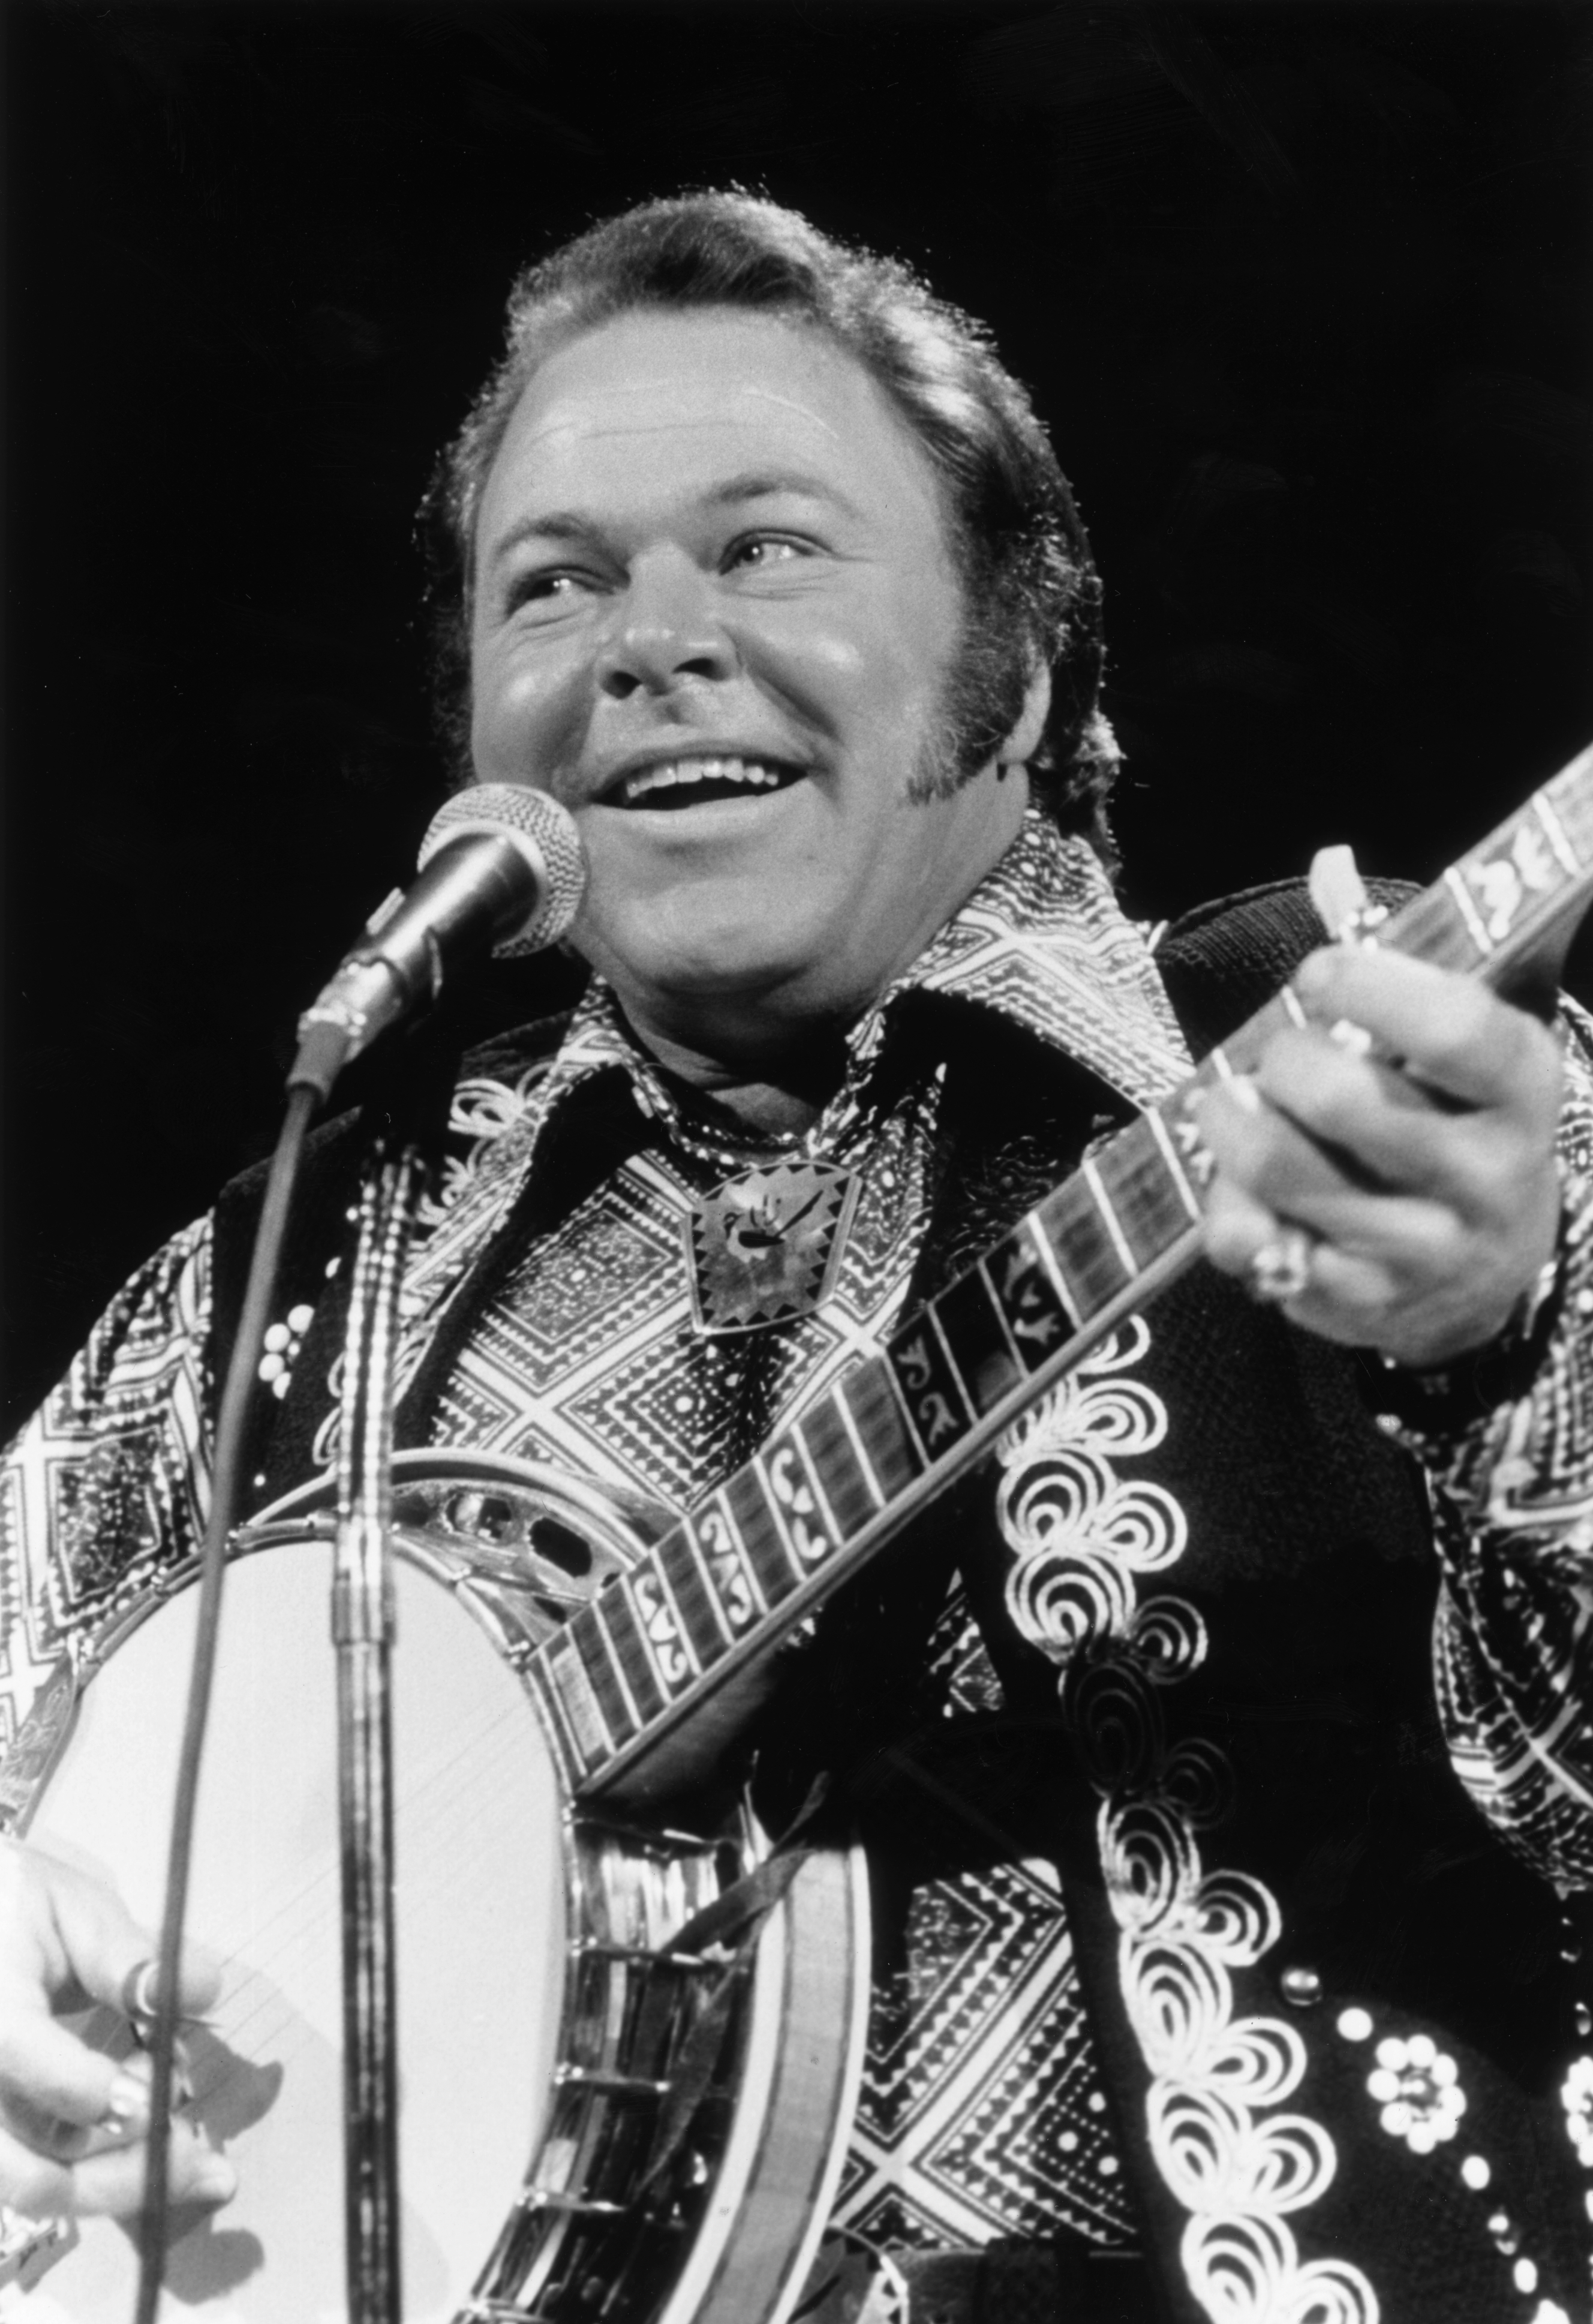 Roy Clark performing at a stage